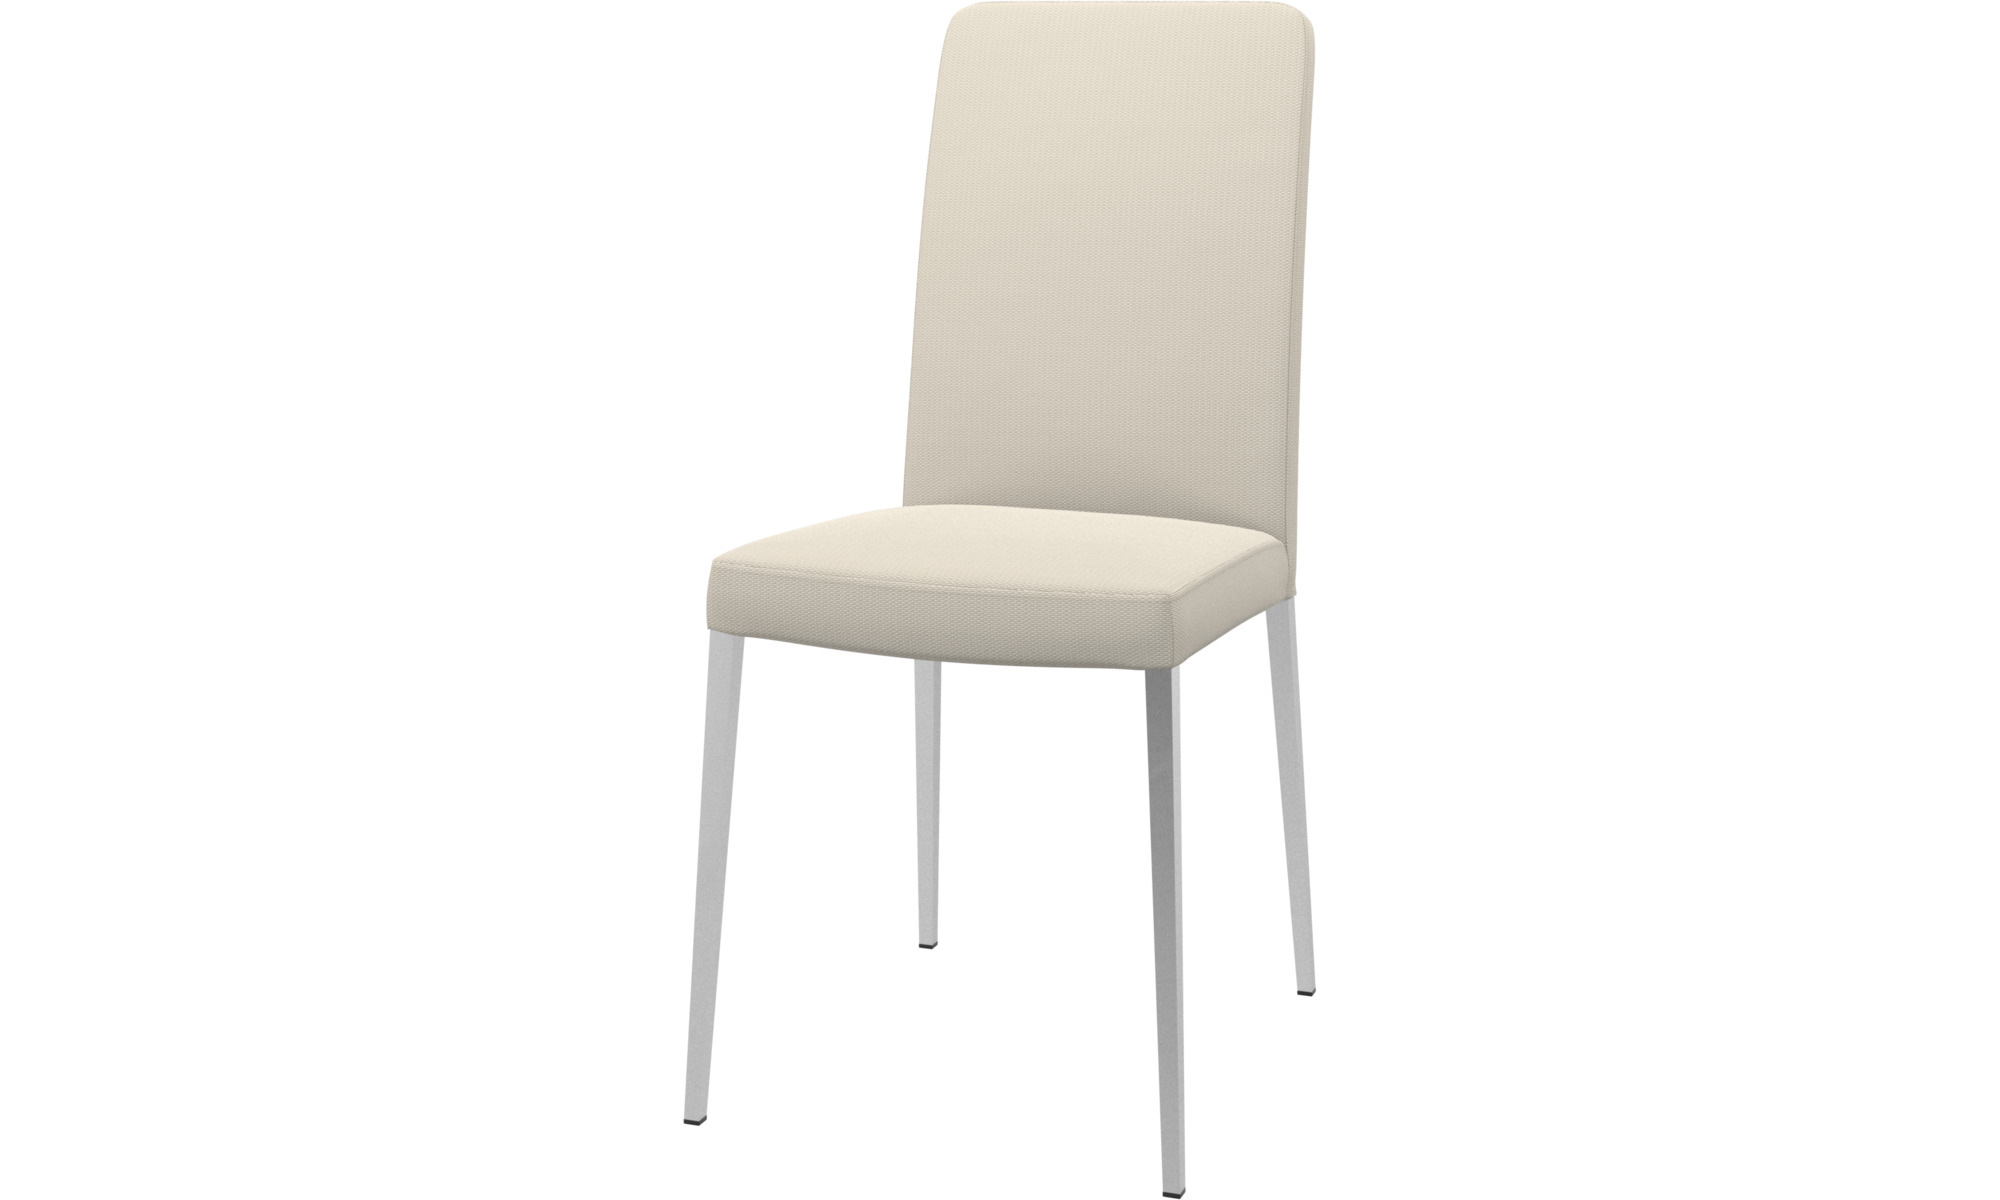 Dining chairs - Nico chair - White - Fabric